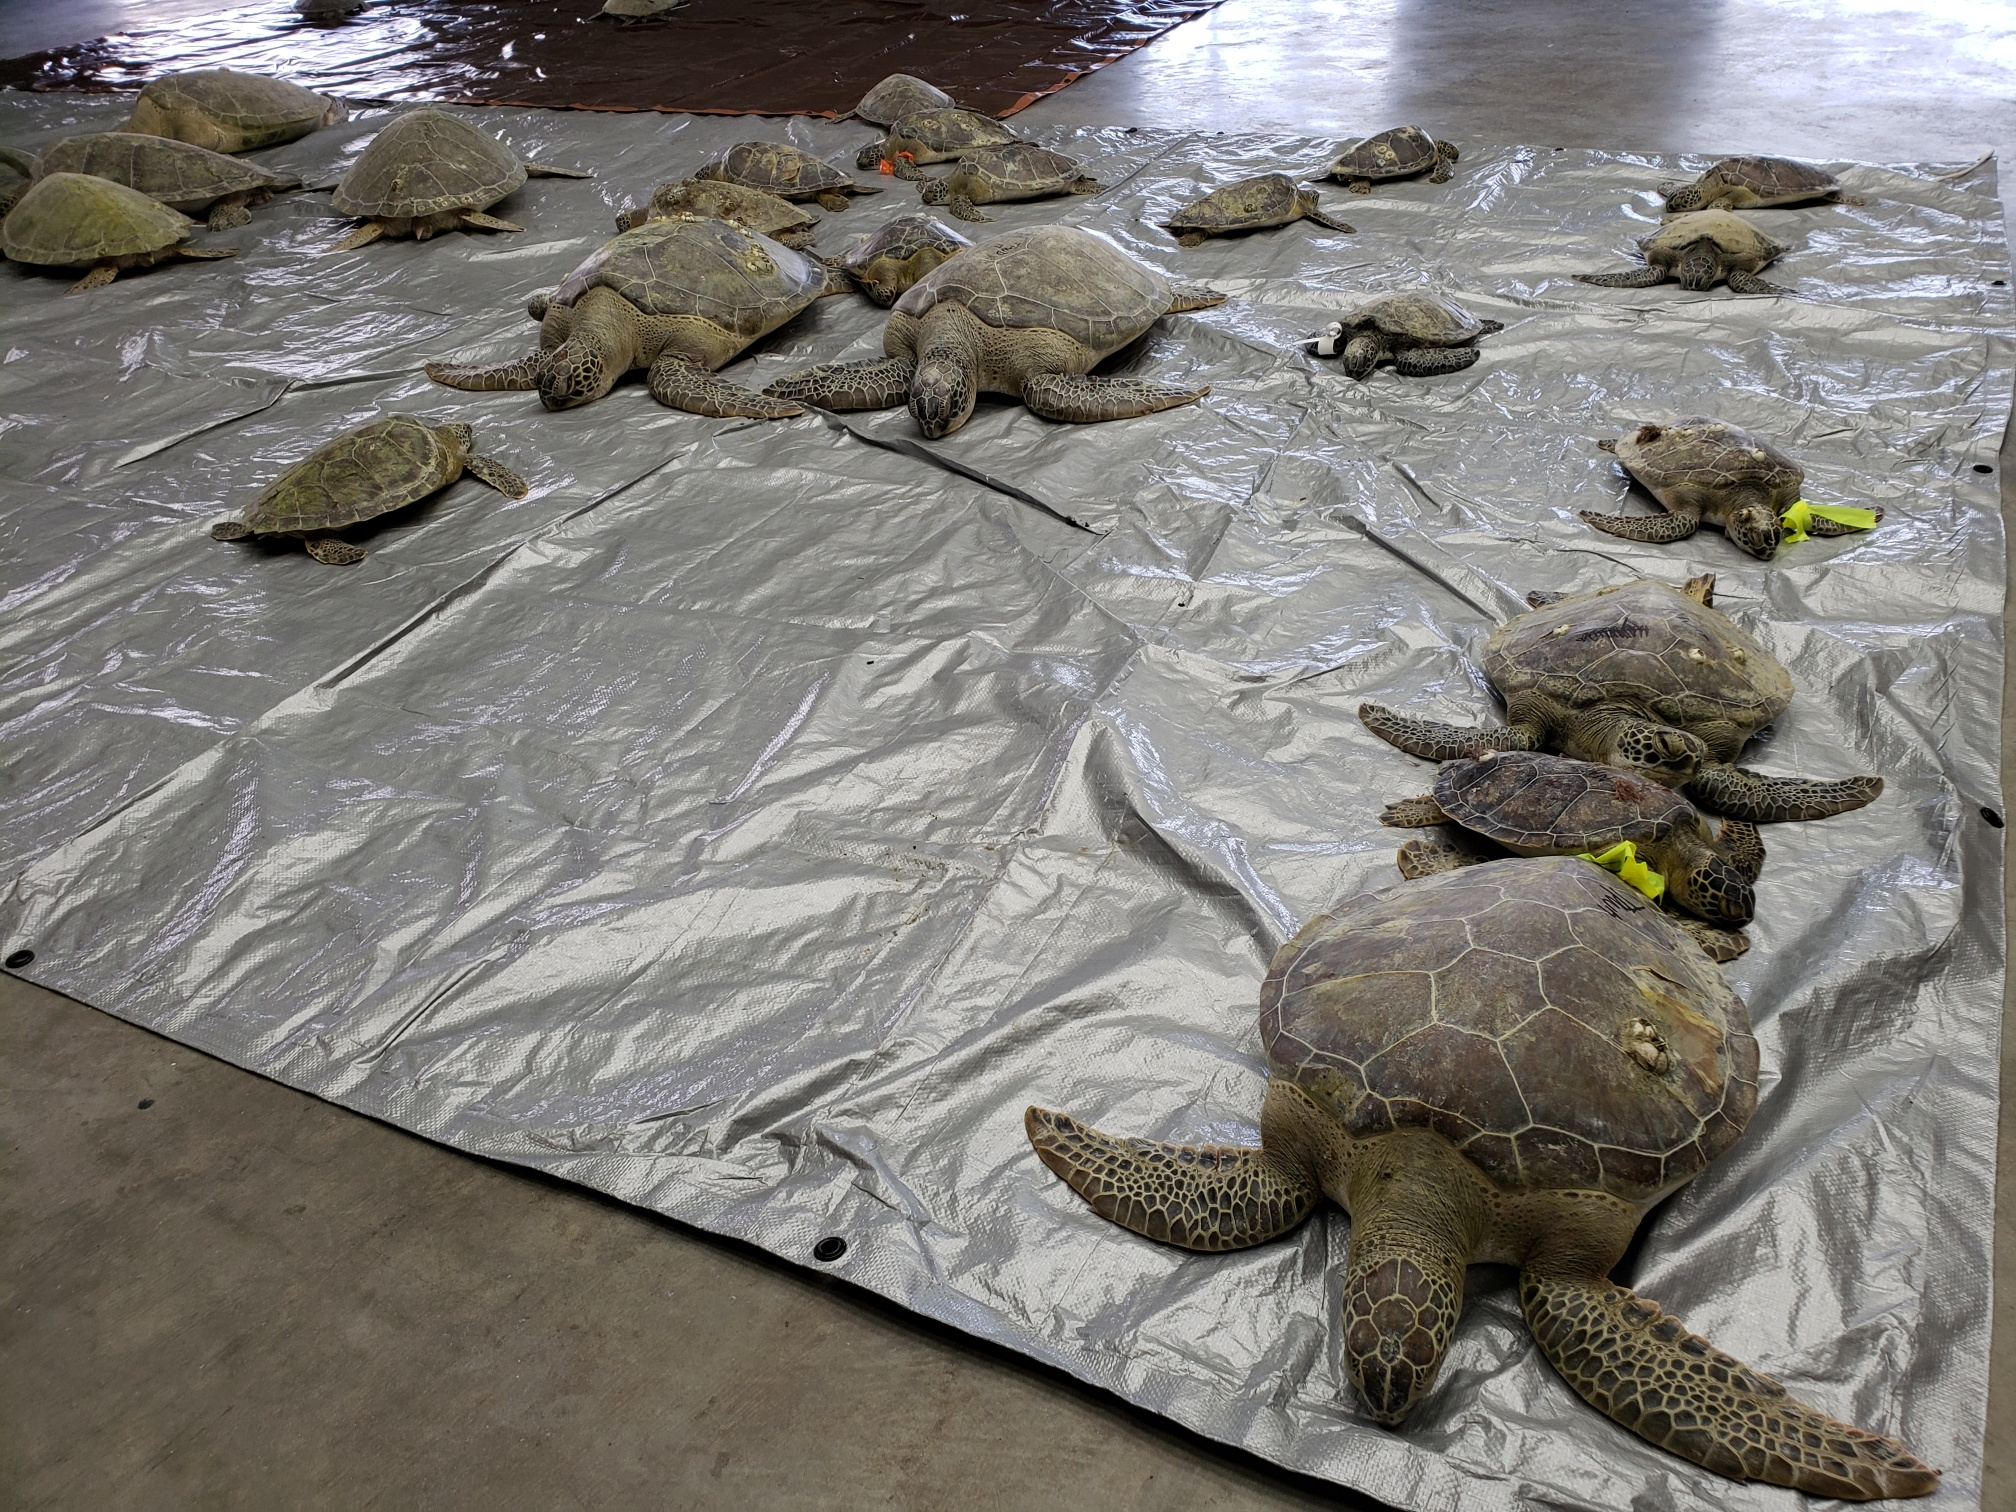 Over twenty recently rescued sea turtles of various sizes resting in a facility in Texas.